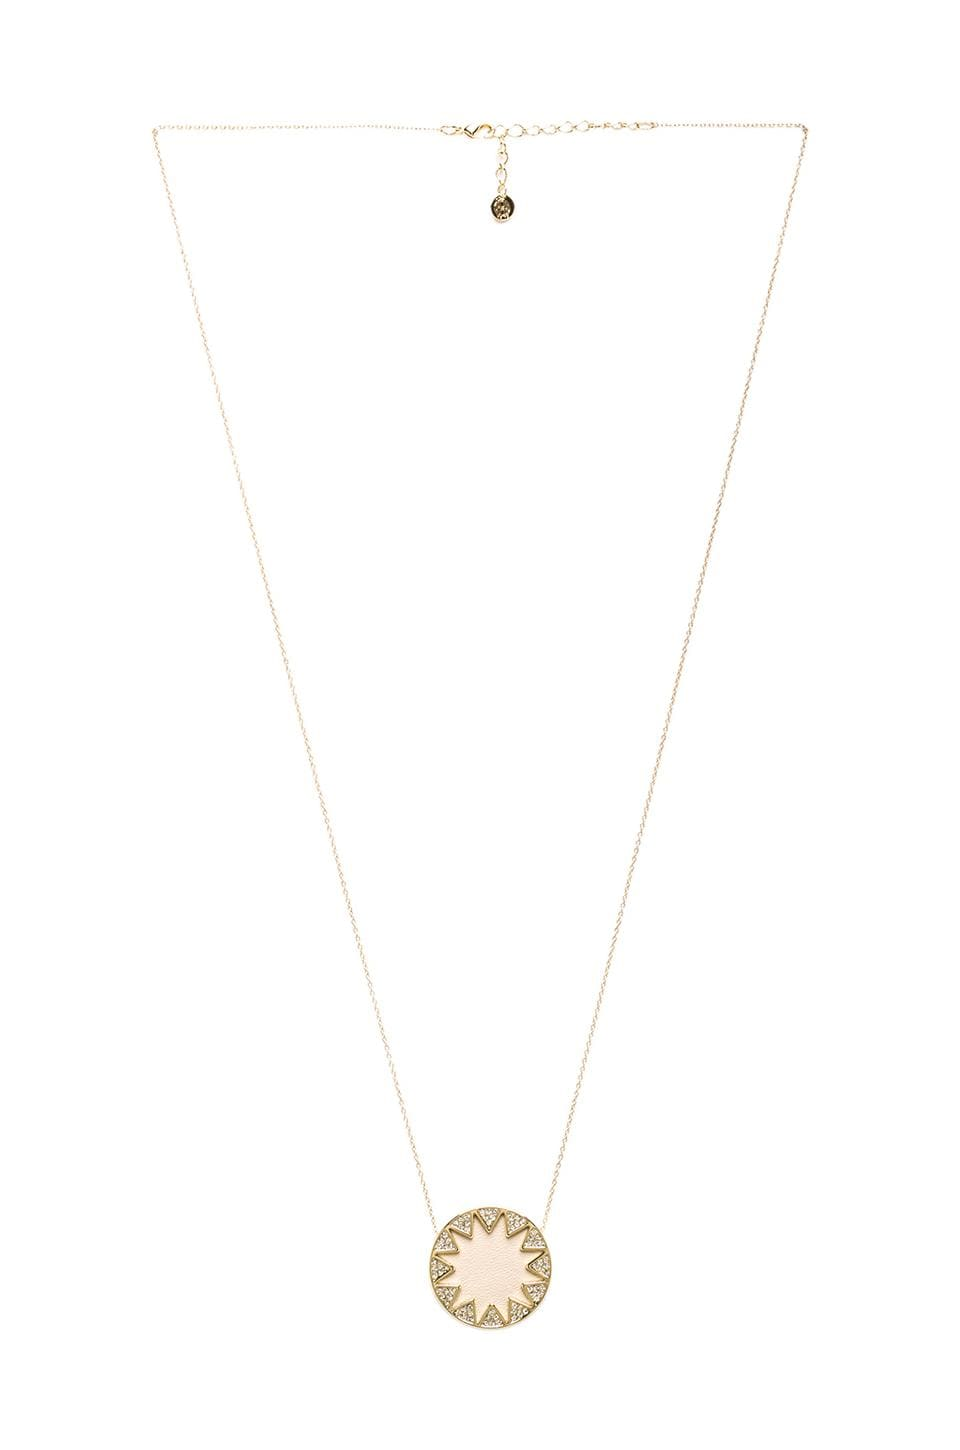 House of Harlow 1960 House of Harlow Medium Pave Sunburst Necklace in Gold Tone Cream